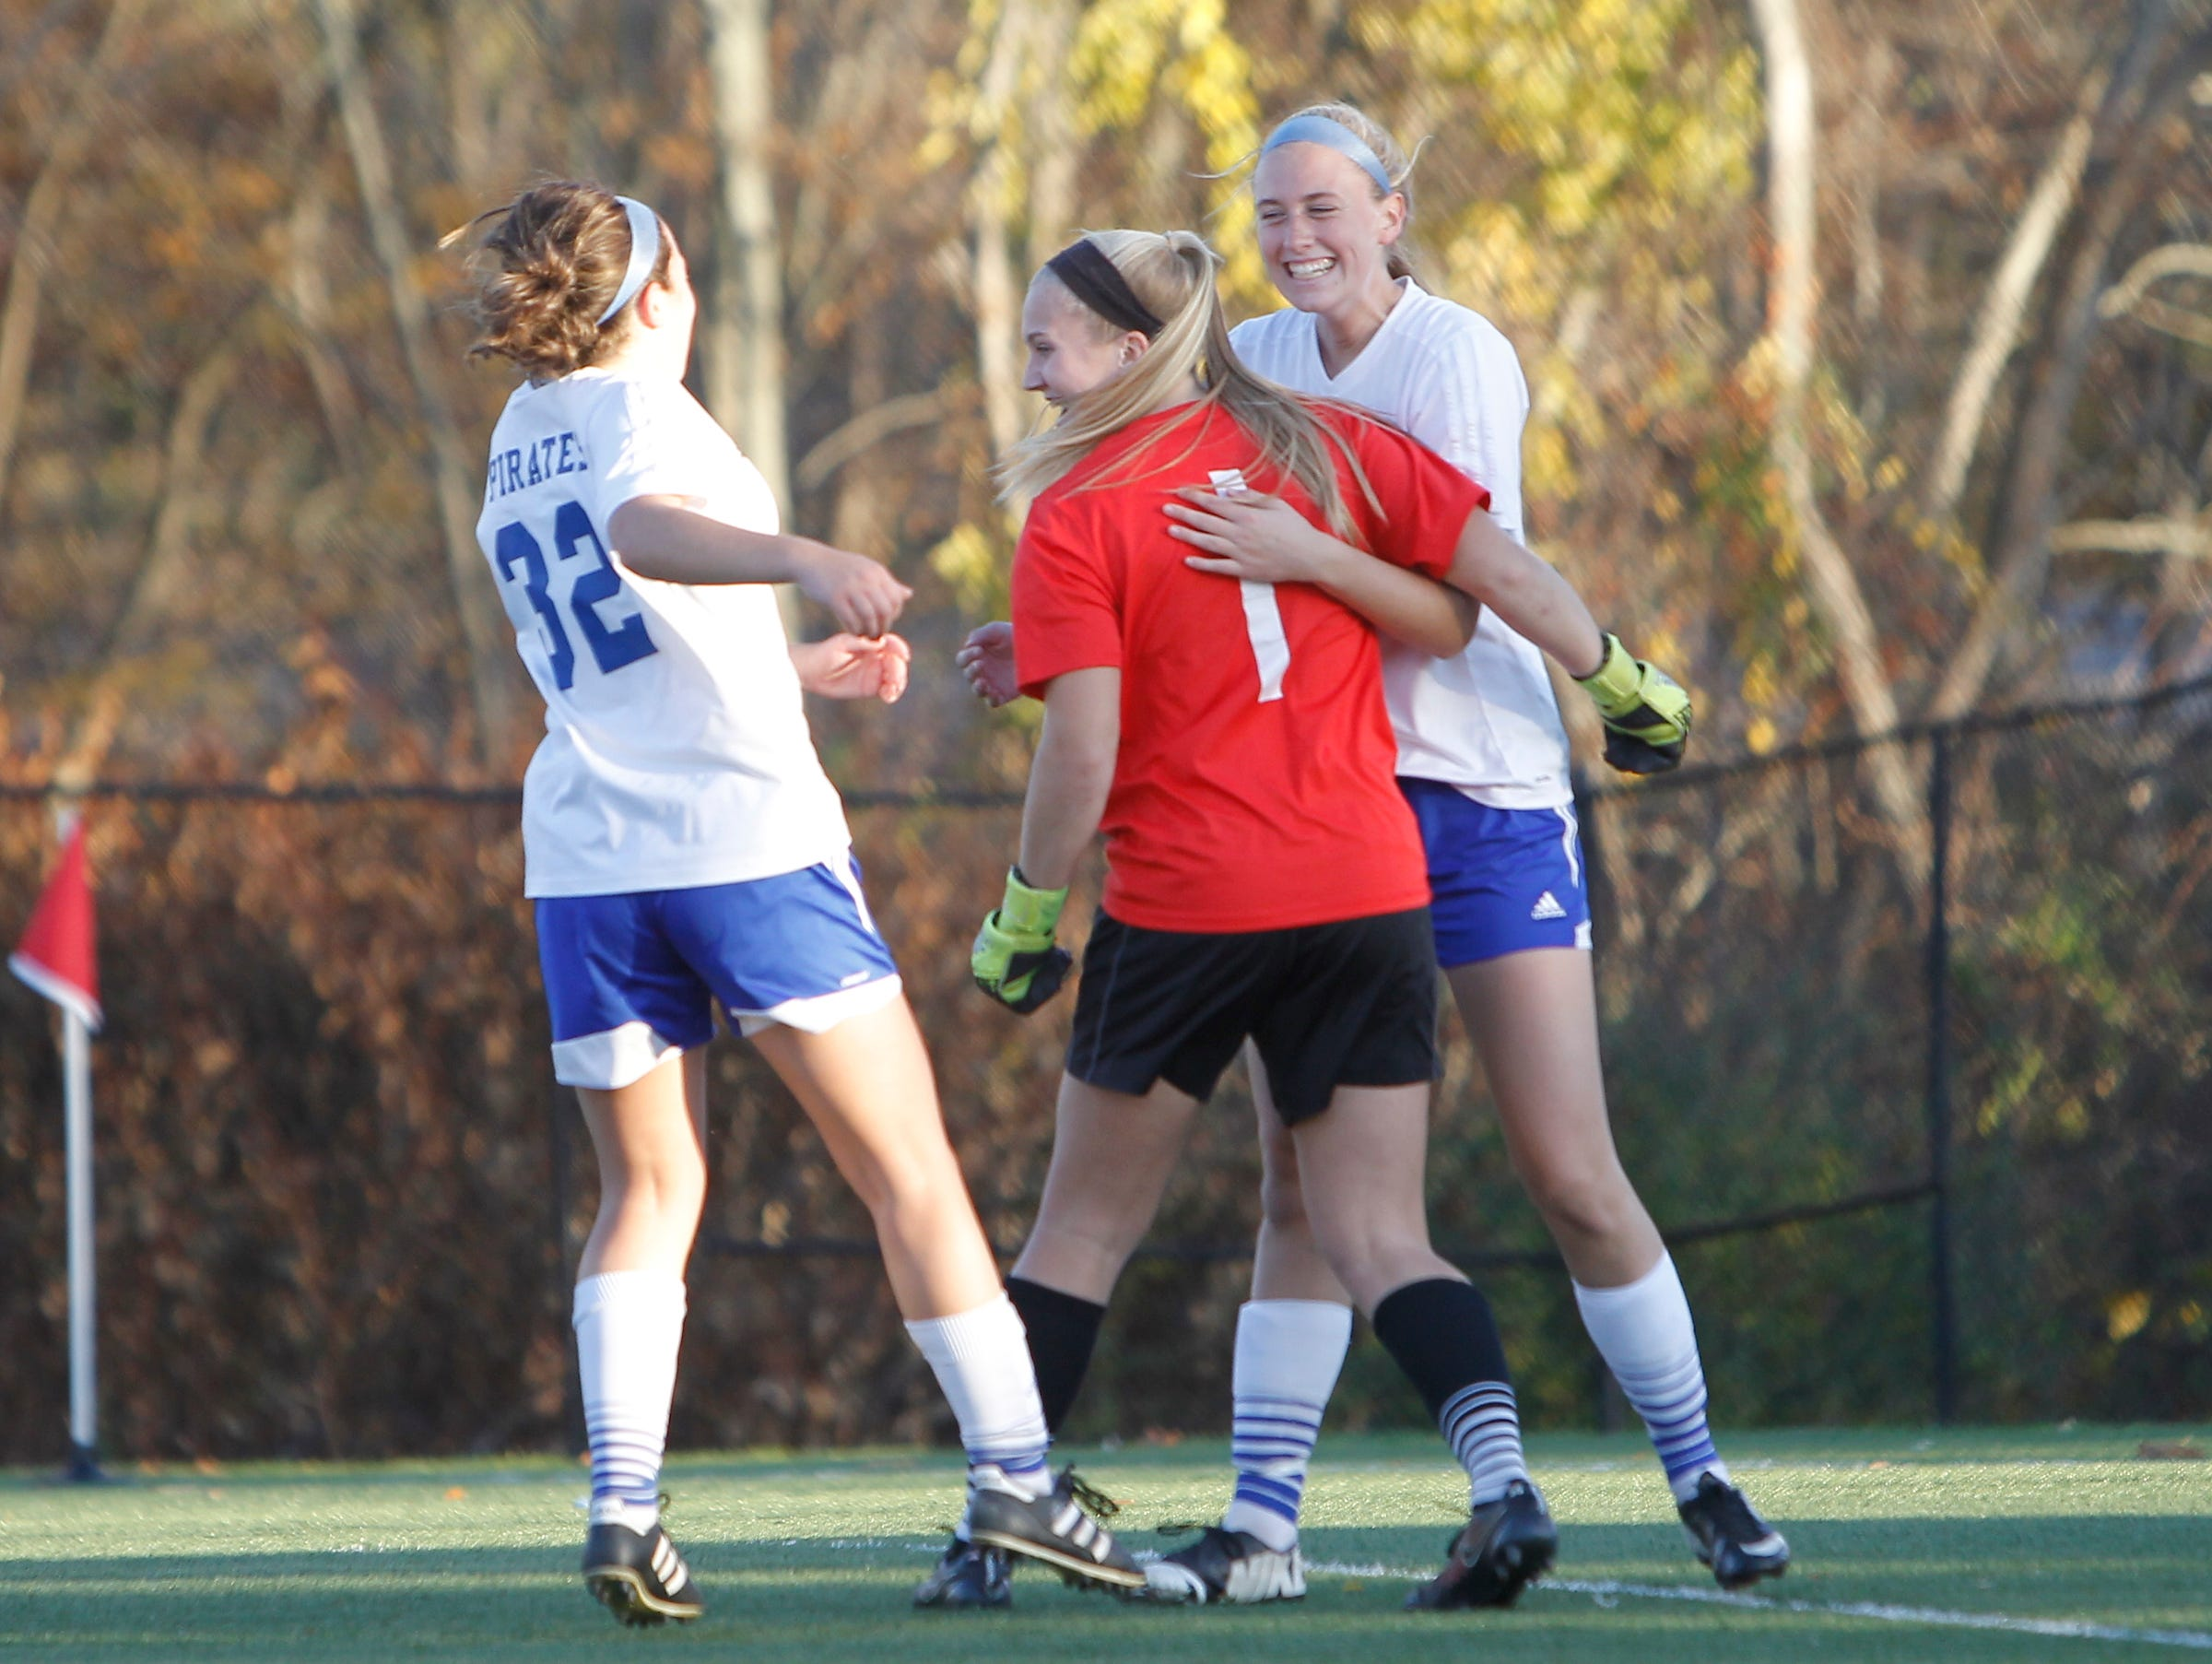 Pearl River's Kristen Ferriello (32), goalie Lauren Gallagher (1) and Kari Portington (22) back, celebrate their 2-0 win over Byram Hills in a sectional semi-final girls soccer game in Orangeburg on Thursday, Oct. 29, 2015.